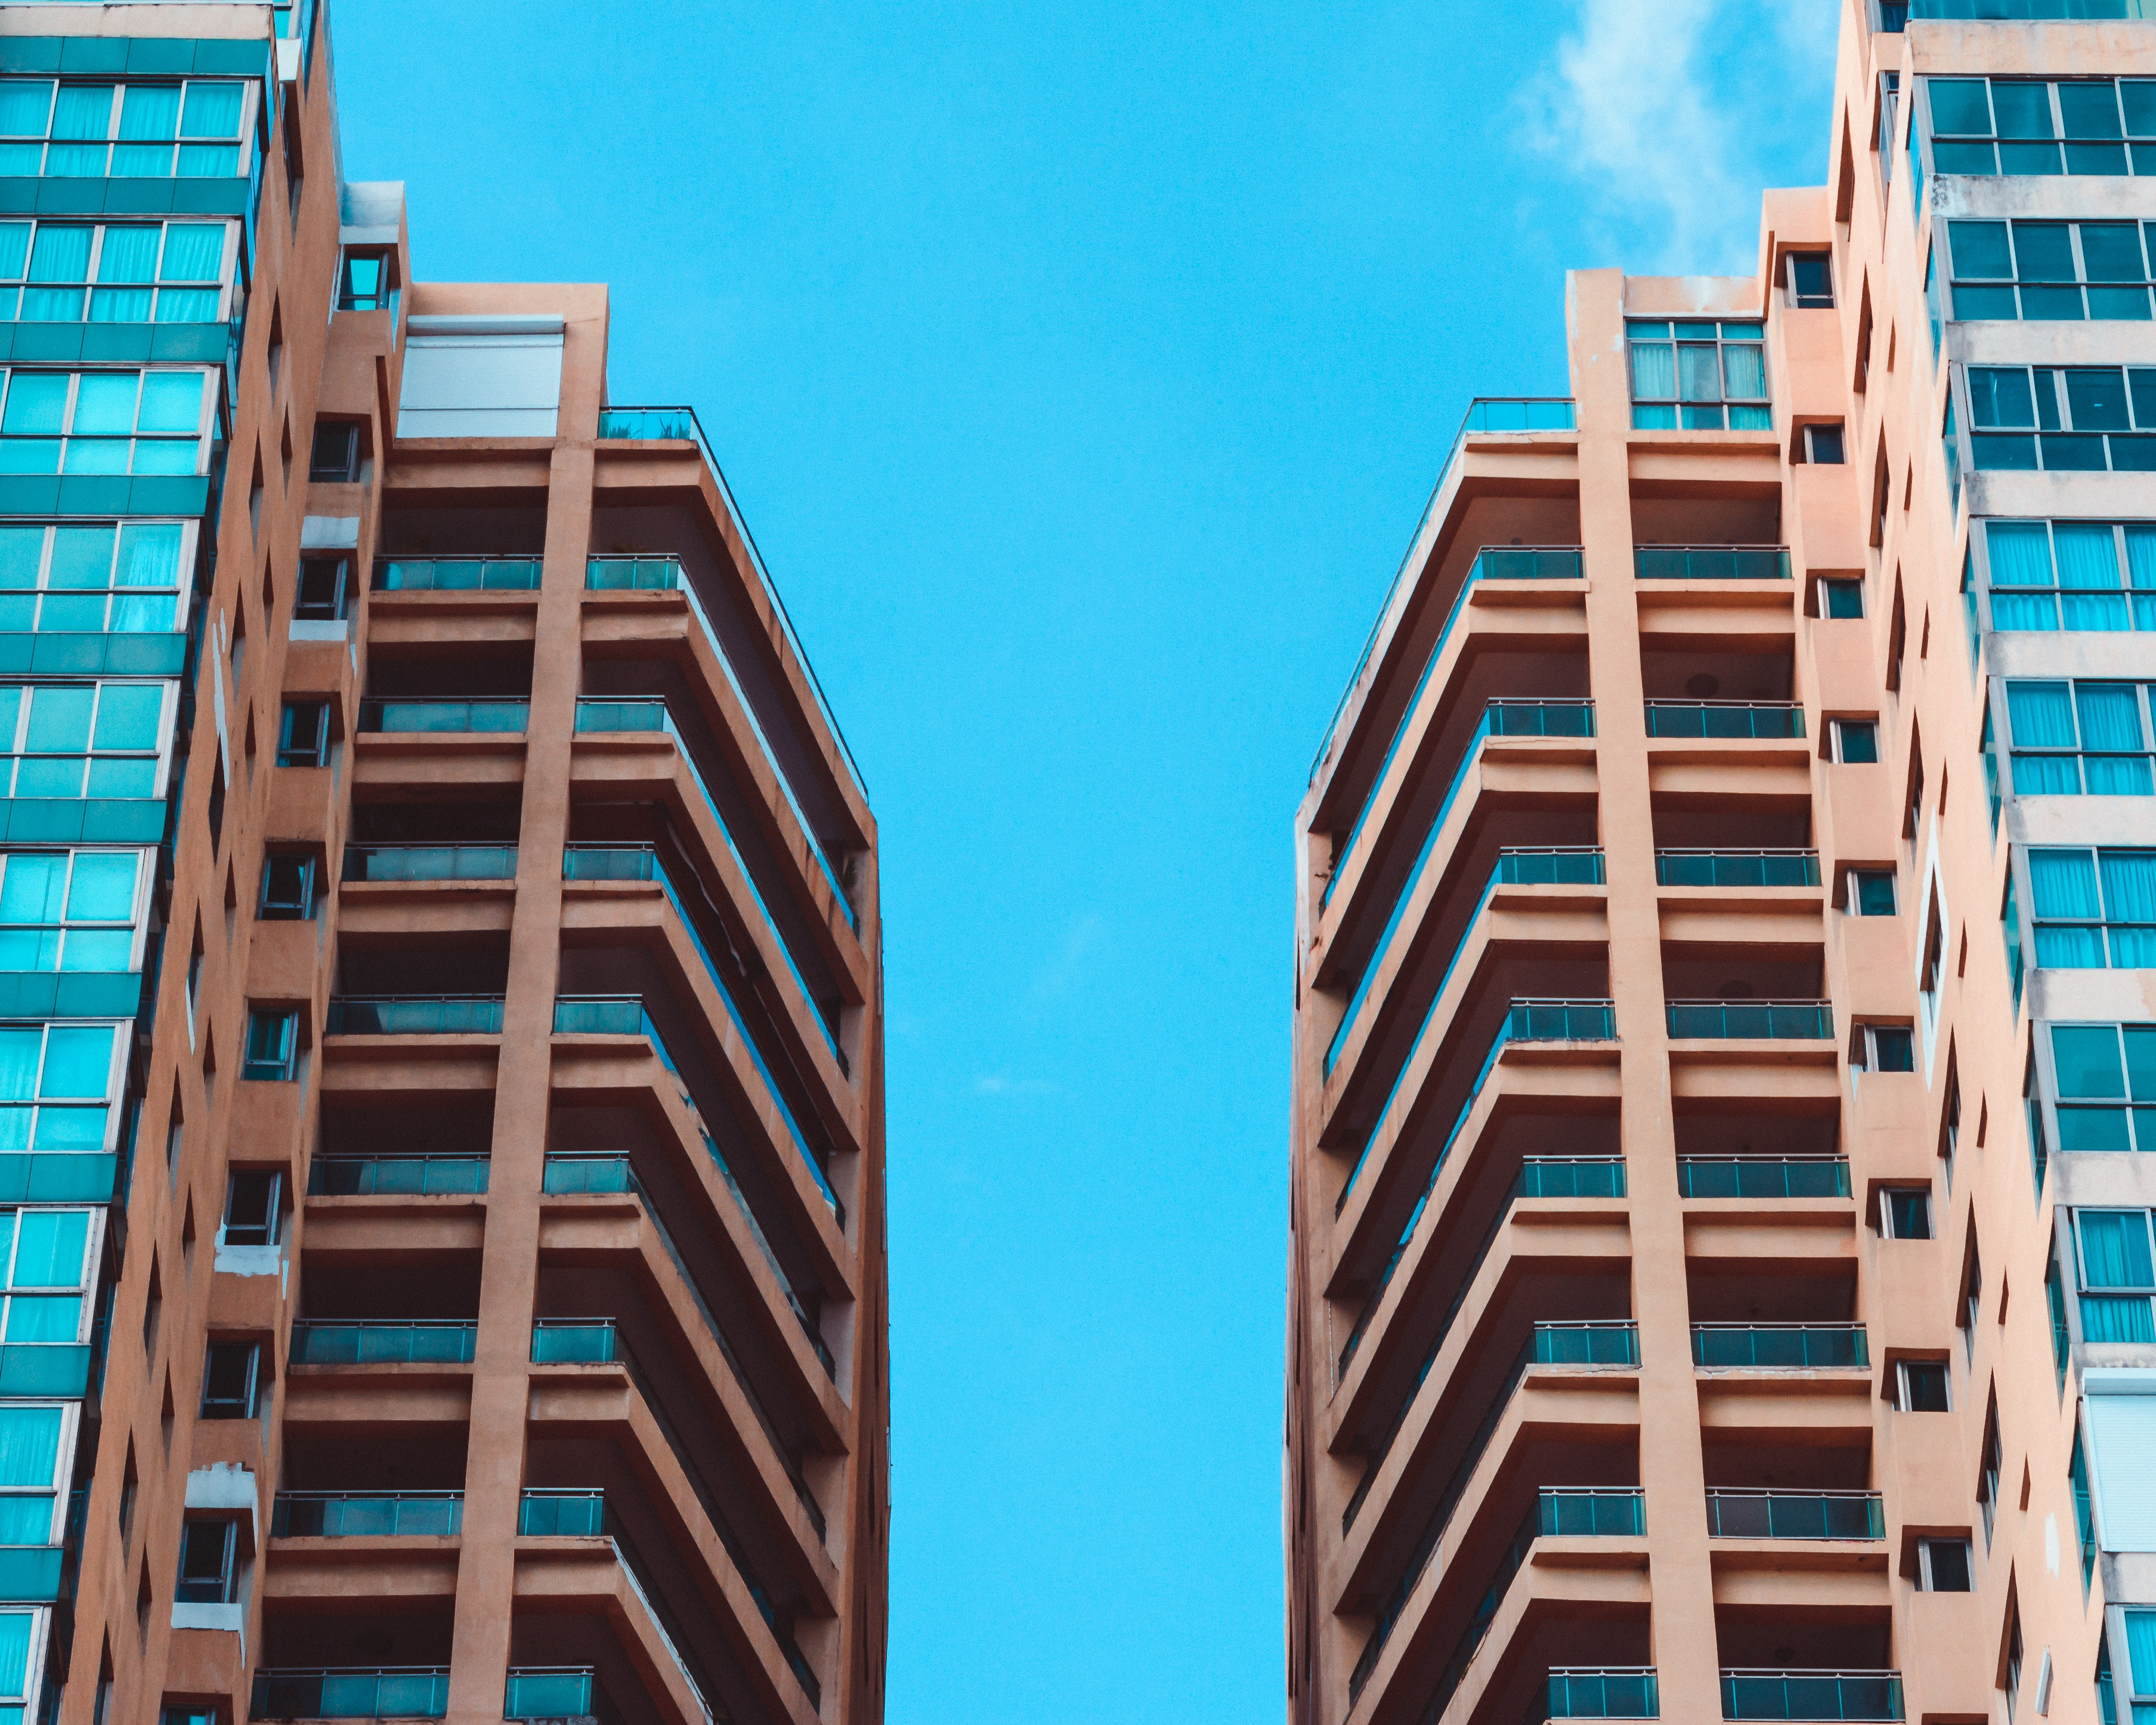 Low Angle View of Two High Rise Buildings Under Blue Sky, Architectural design, High, Urban, Tall, HQ Photo